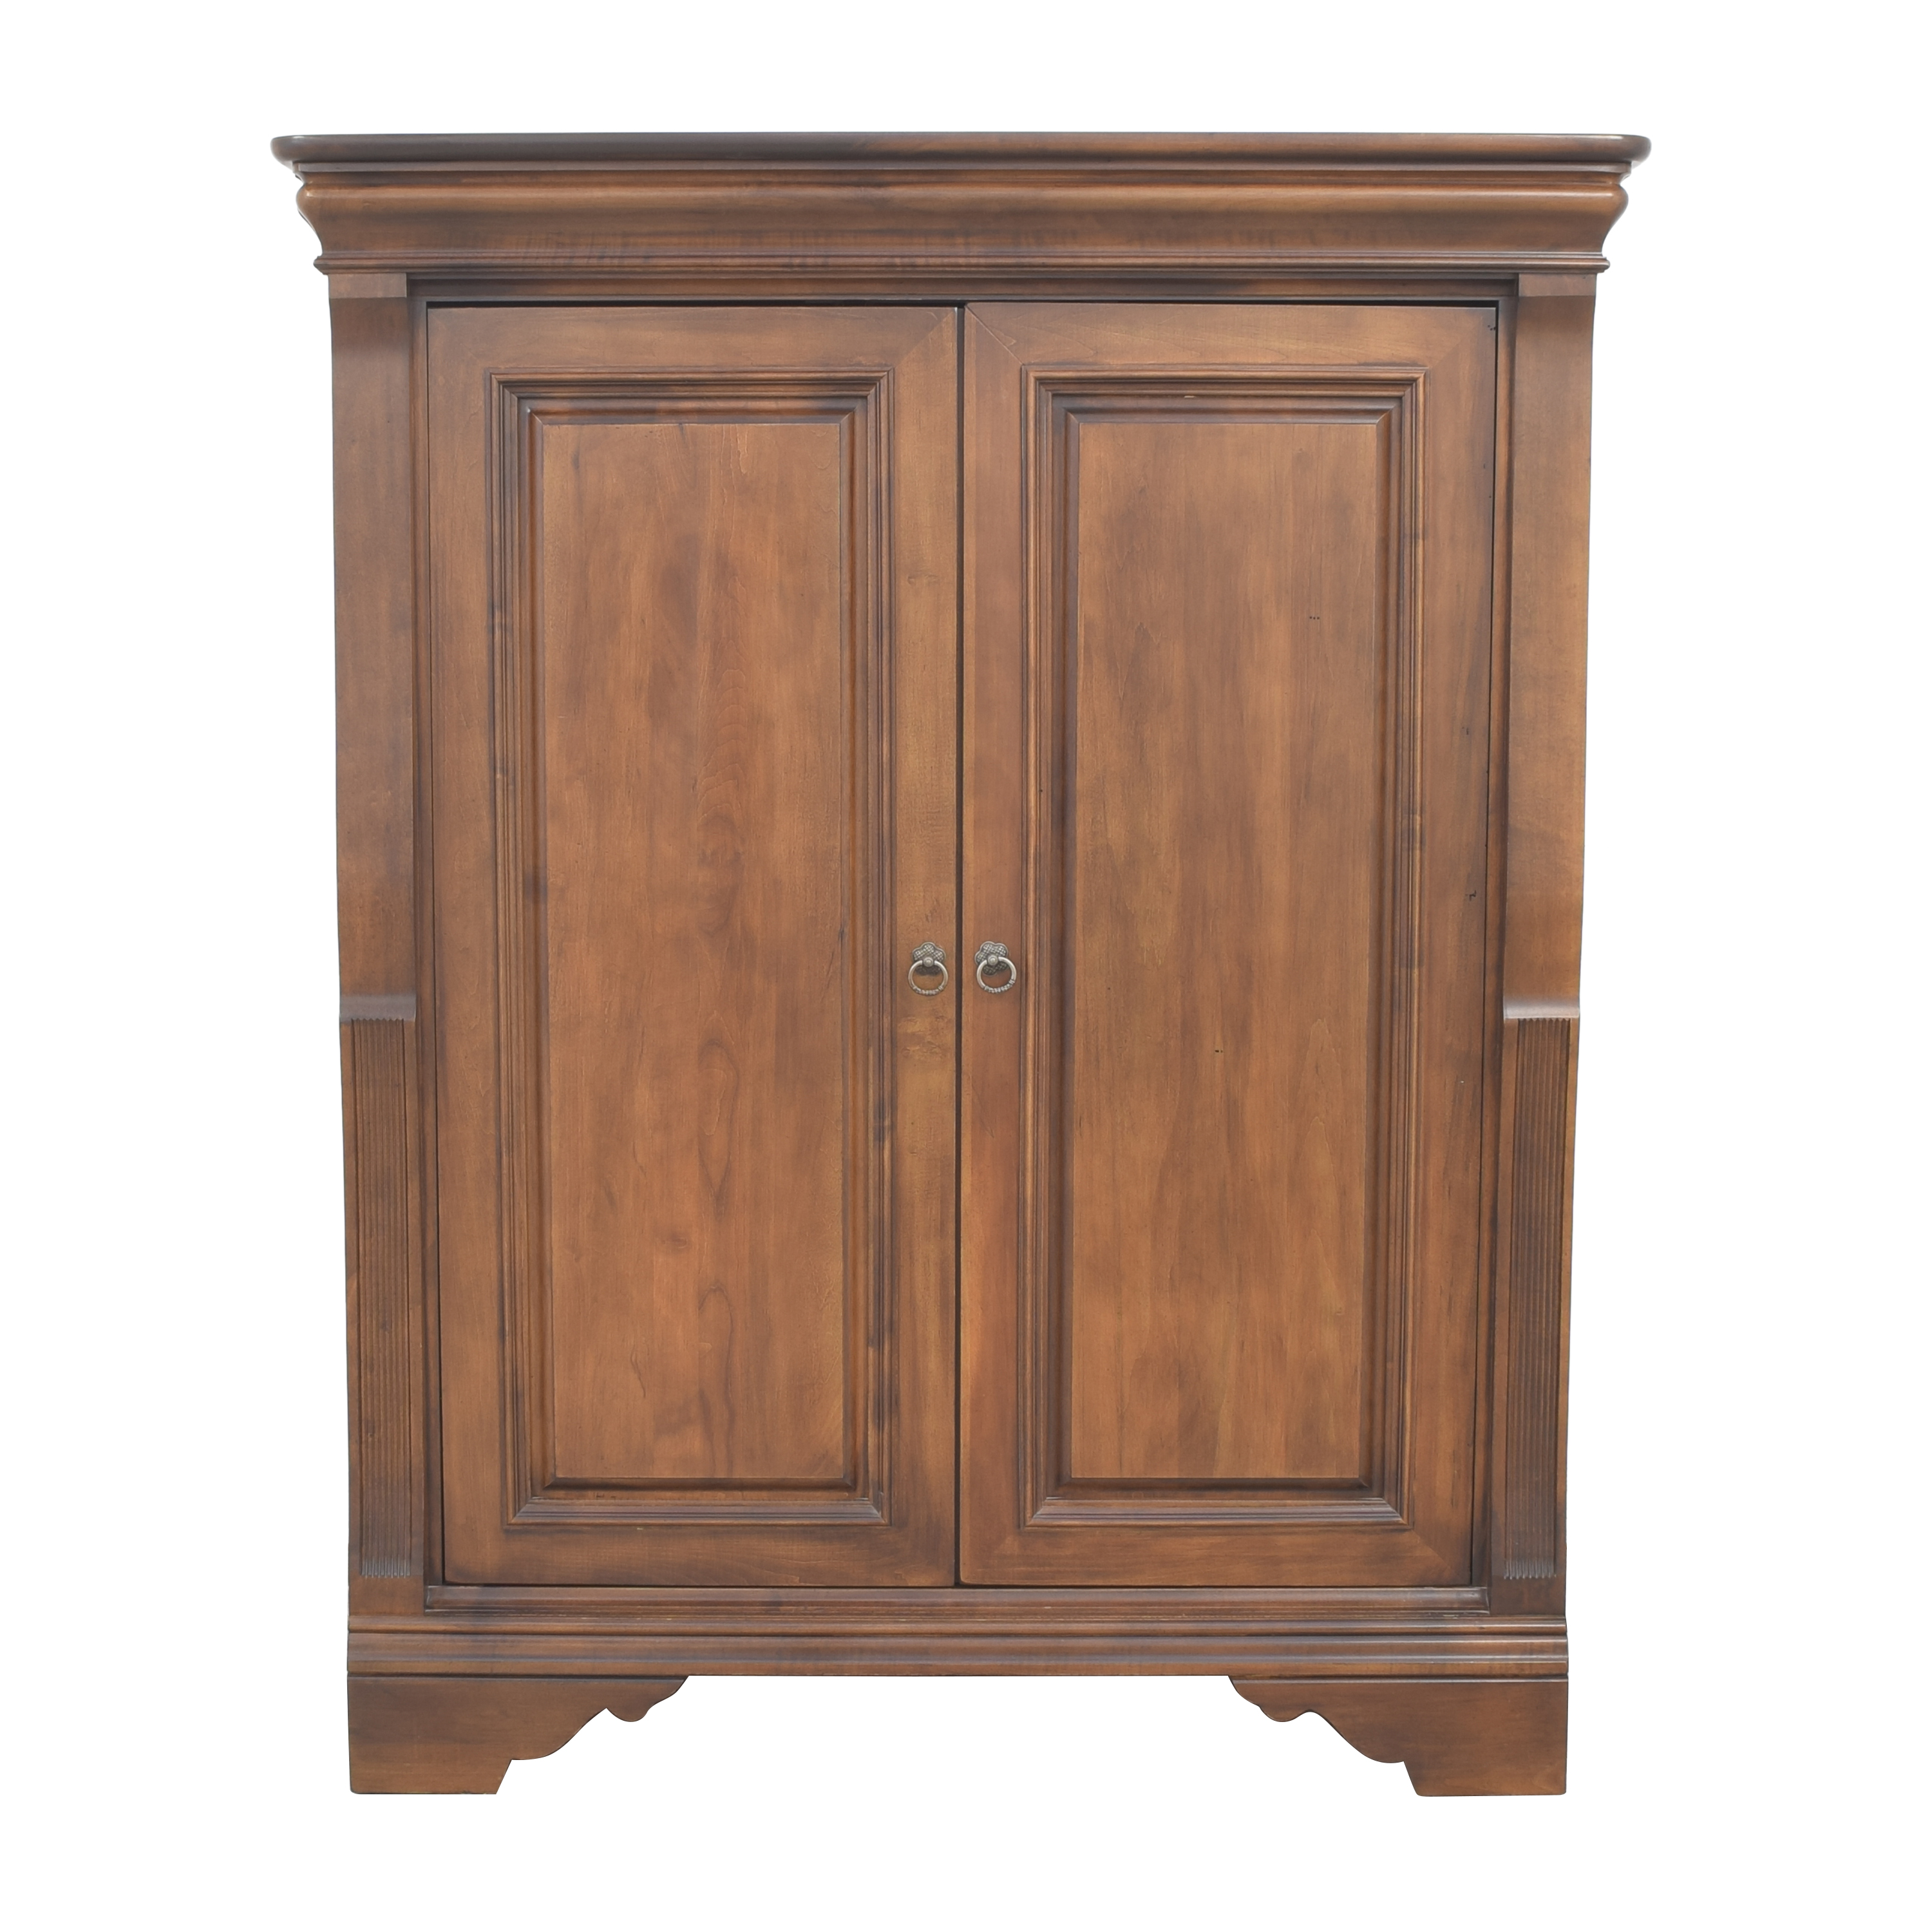 Kincaid Furniture Kincaid Furniture Media Armoire Storage